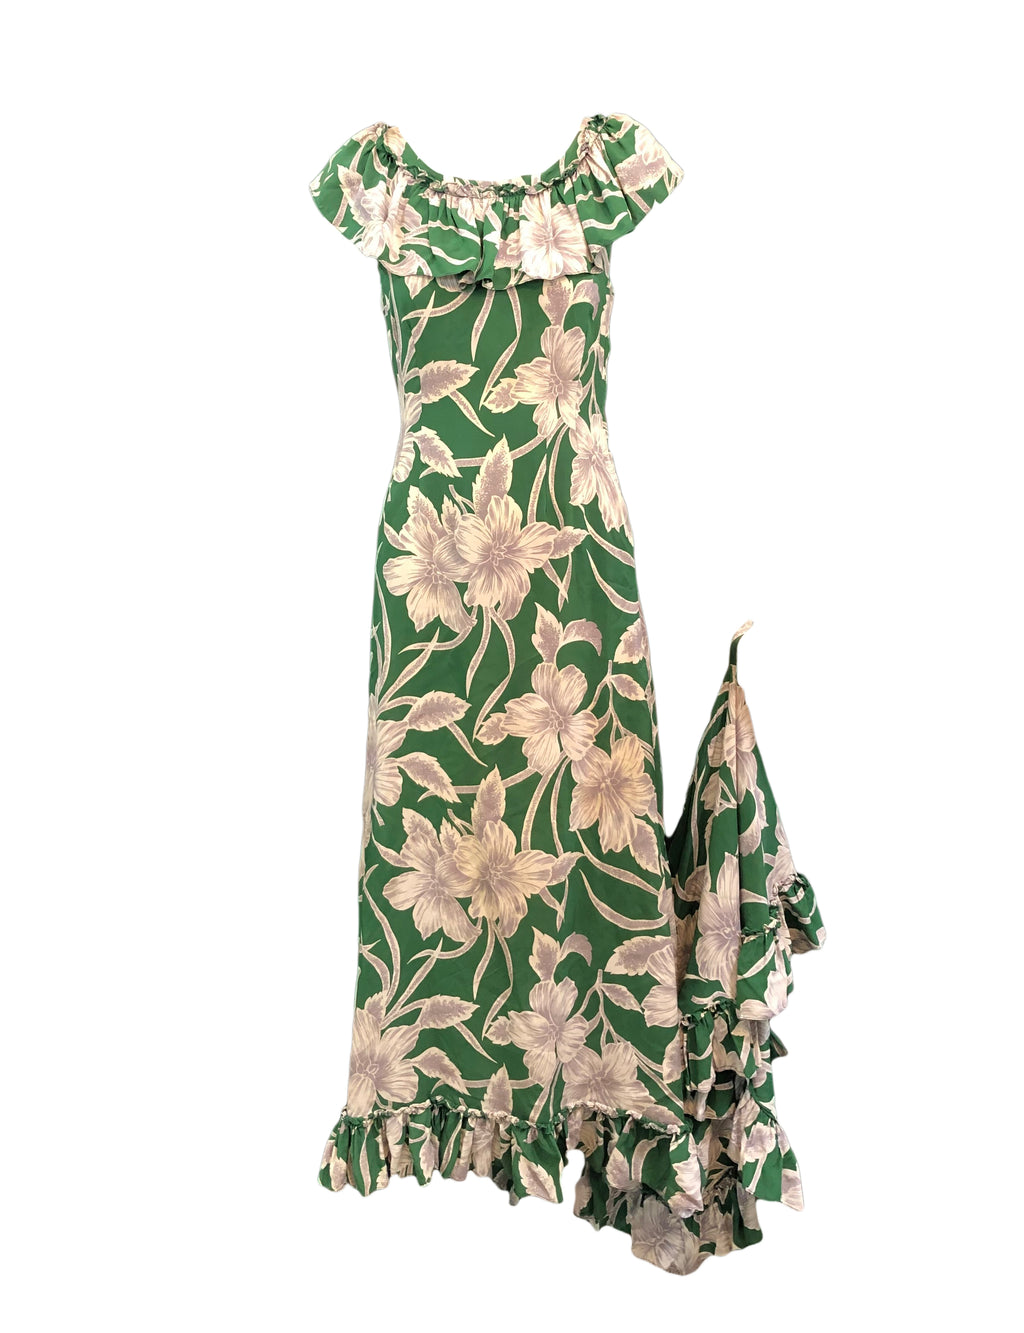 Incredible 1940s Green  Rayon Print Holoku Dress Front 1 of 7